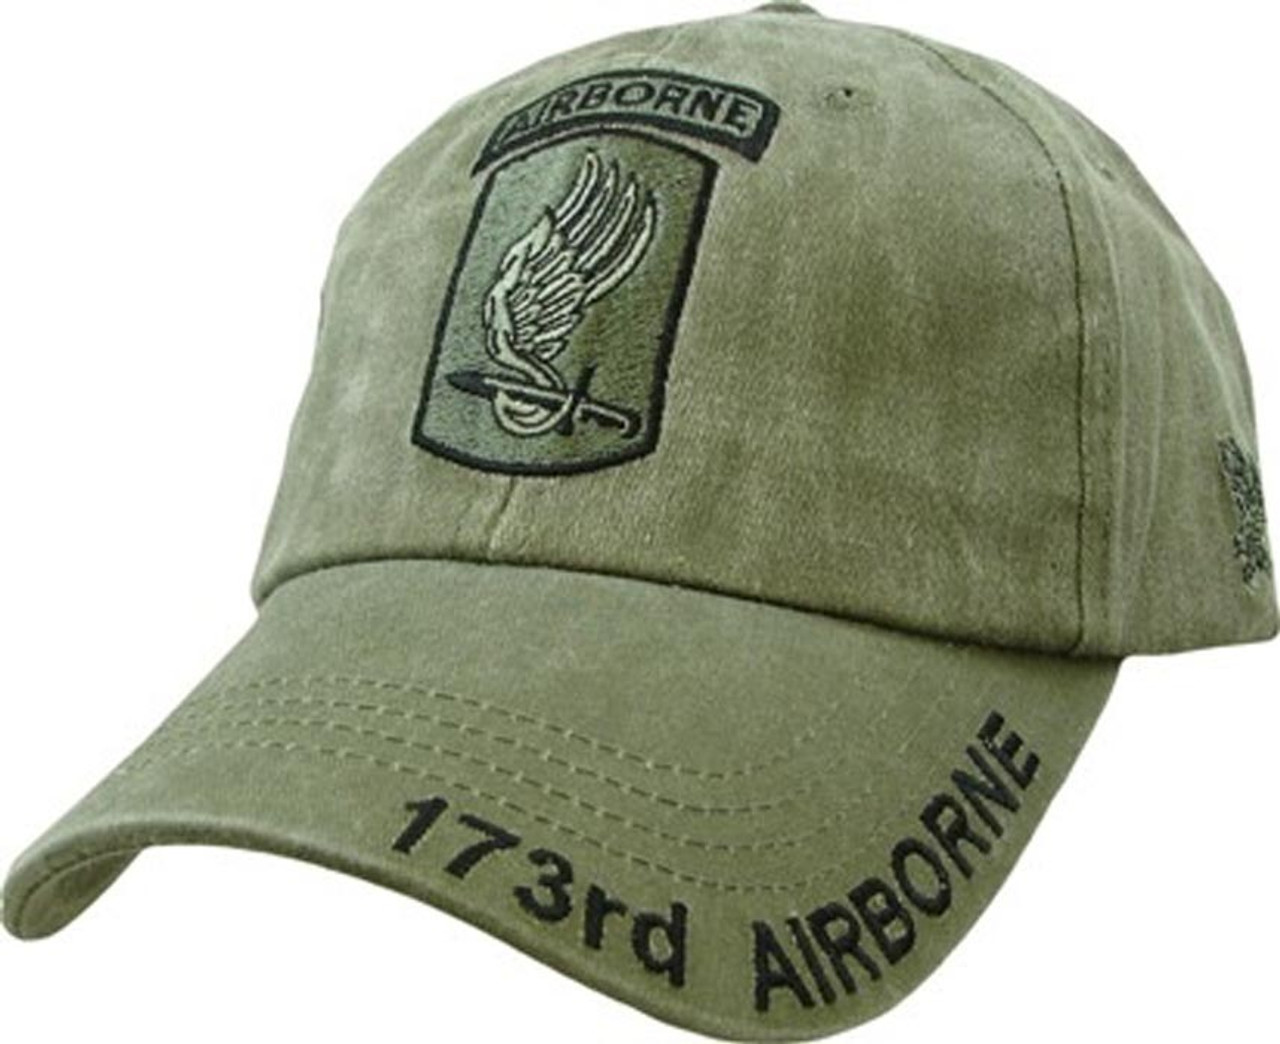 army airborne hat cap baseball od officially licensed military 173rd 101st